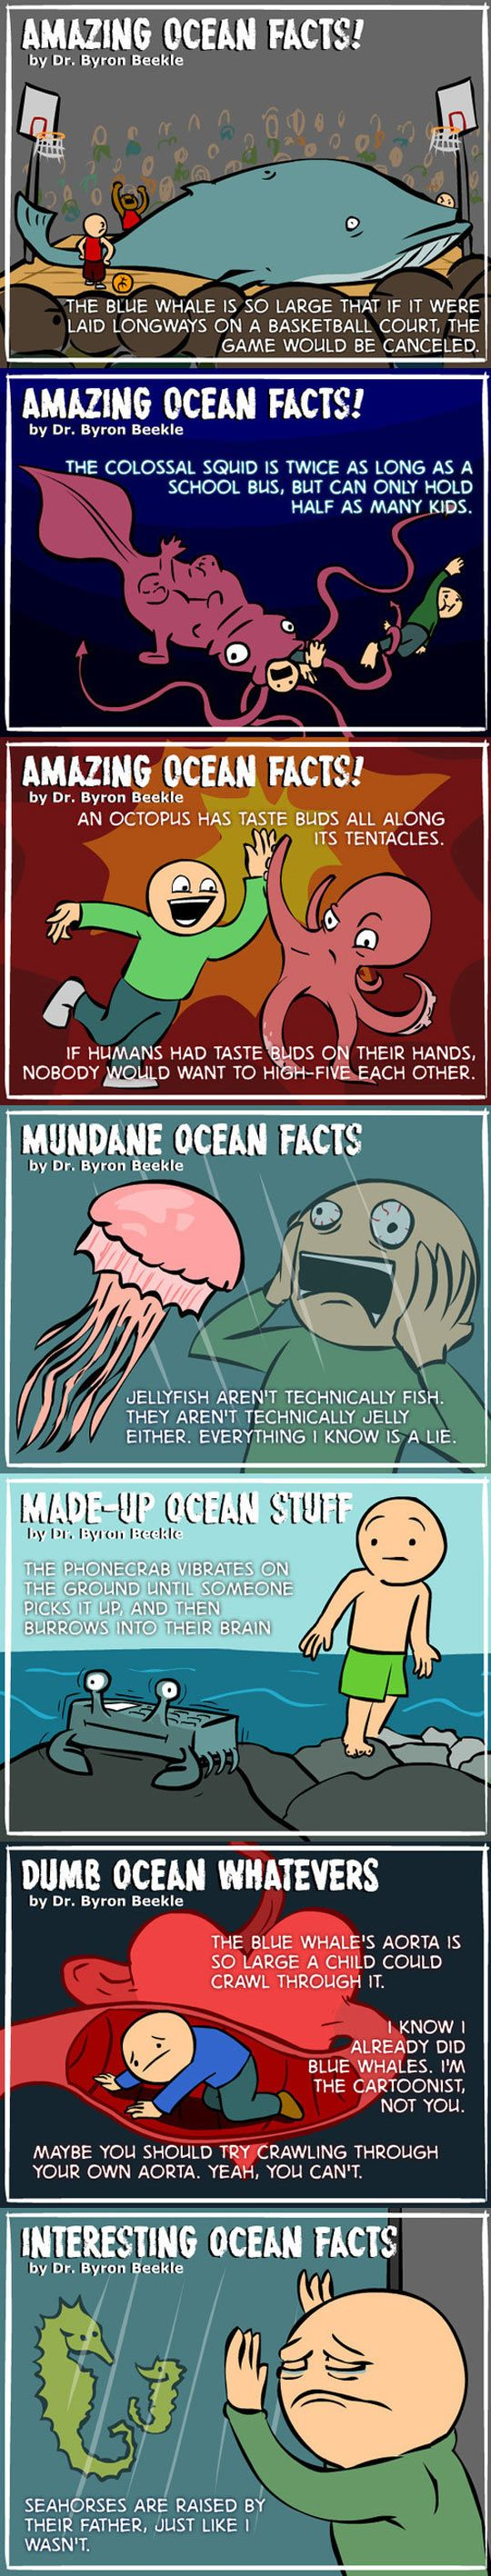 Ocean facts you probably don't know...: Amazing Ocean, Giggle, Funny Pictures, Fun Facts, Funny Stuff, Ocean Facts, Funnies, Humor